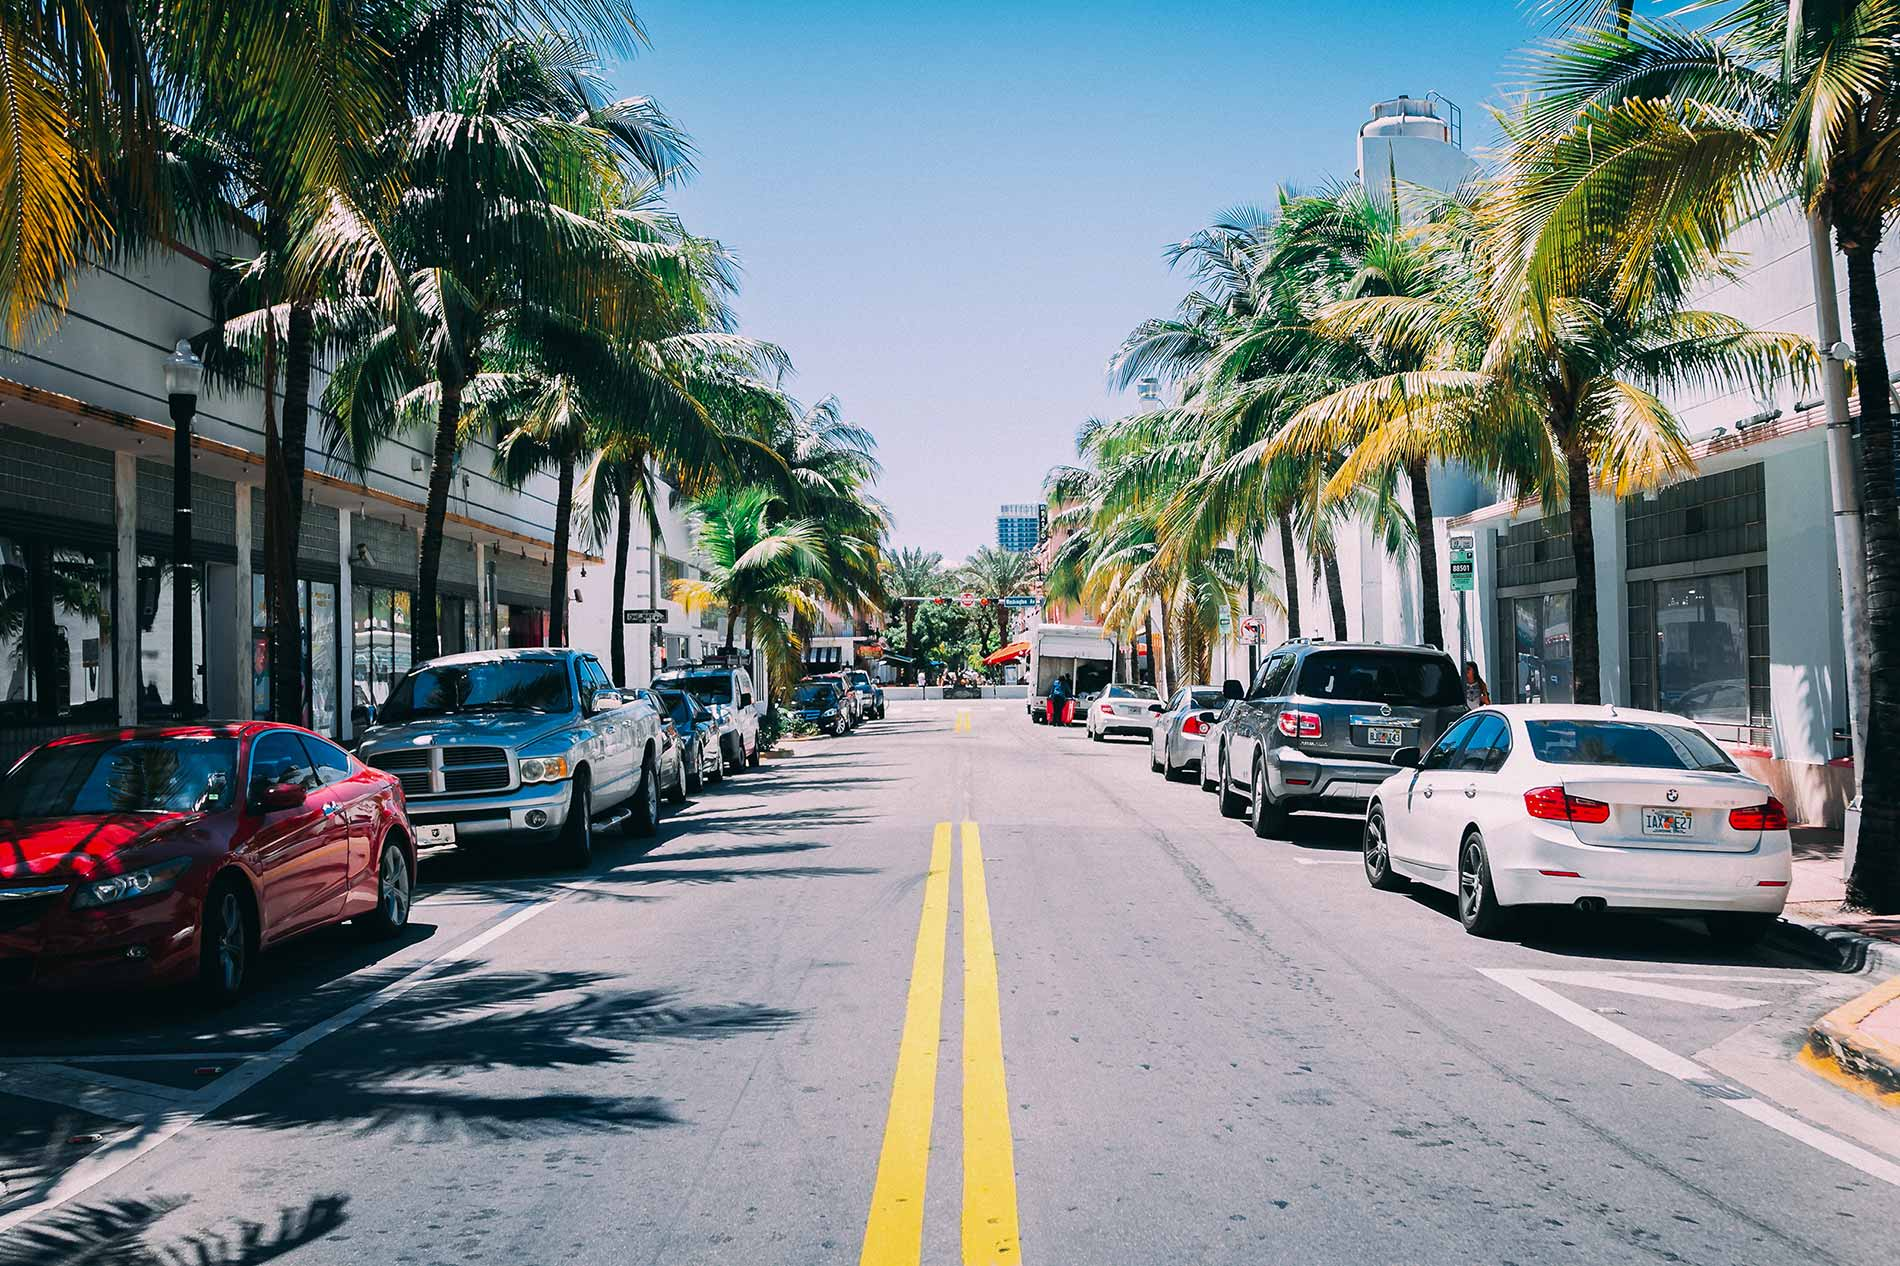 Picture of a street in Miami Beach with cars parked